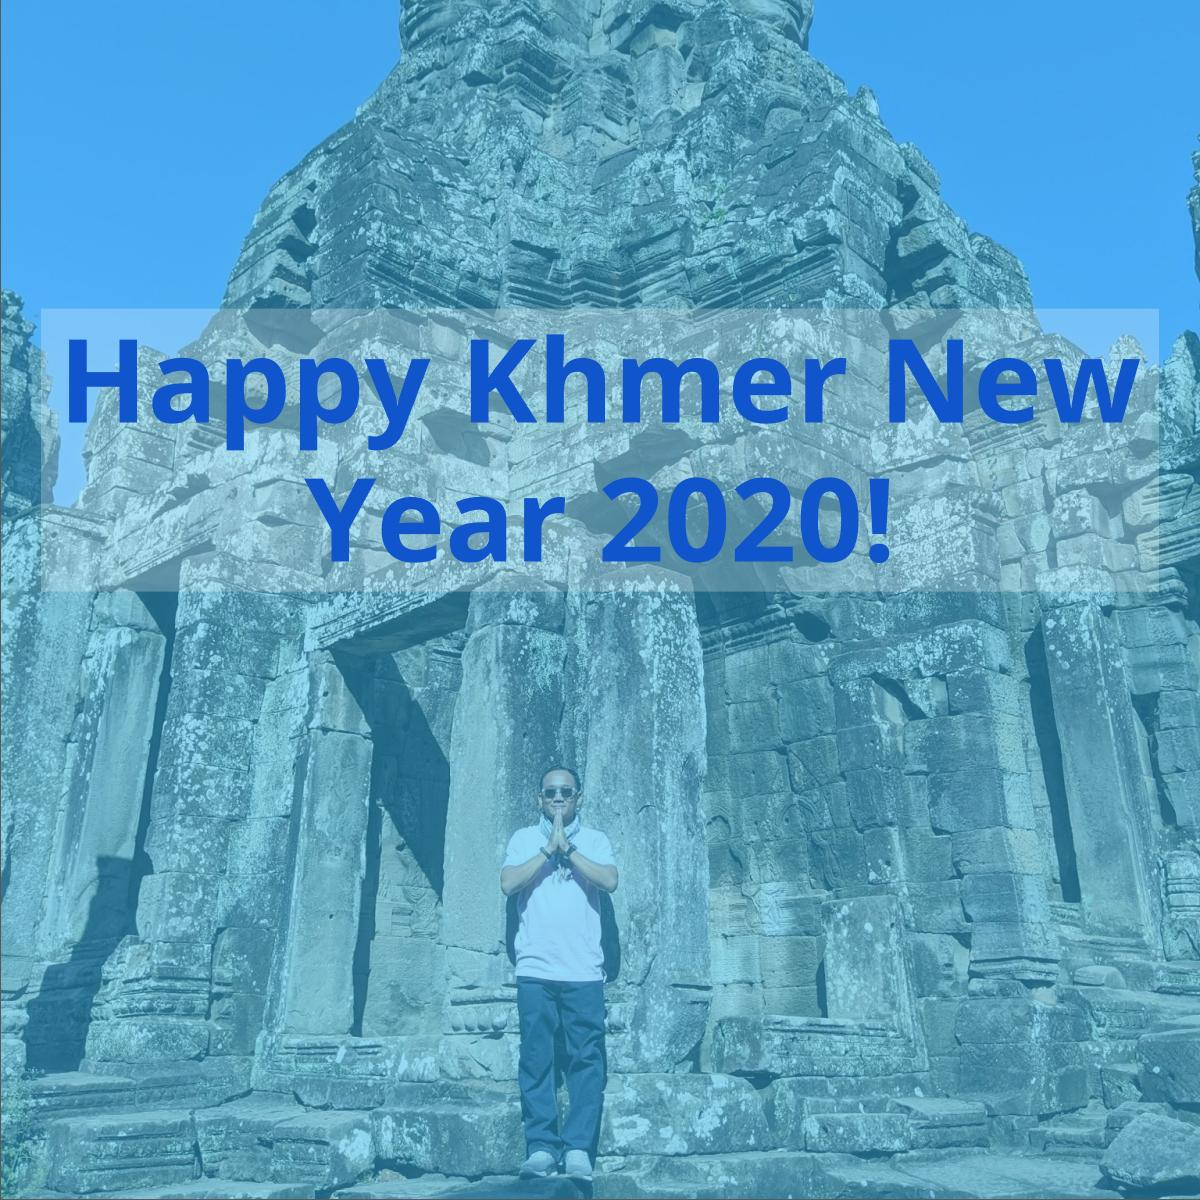 Happy Khmer New Year 2020 by Muon Chamnan